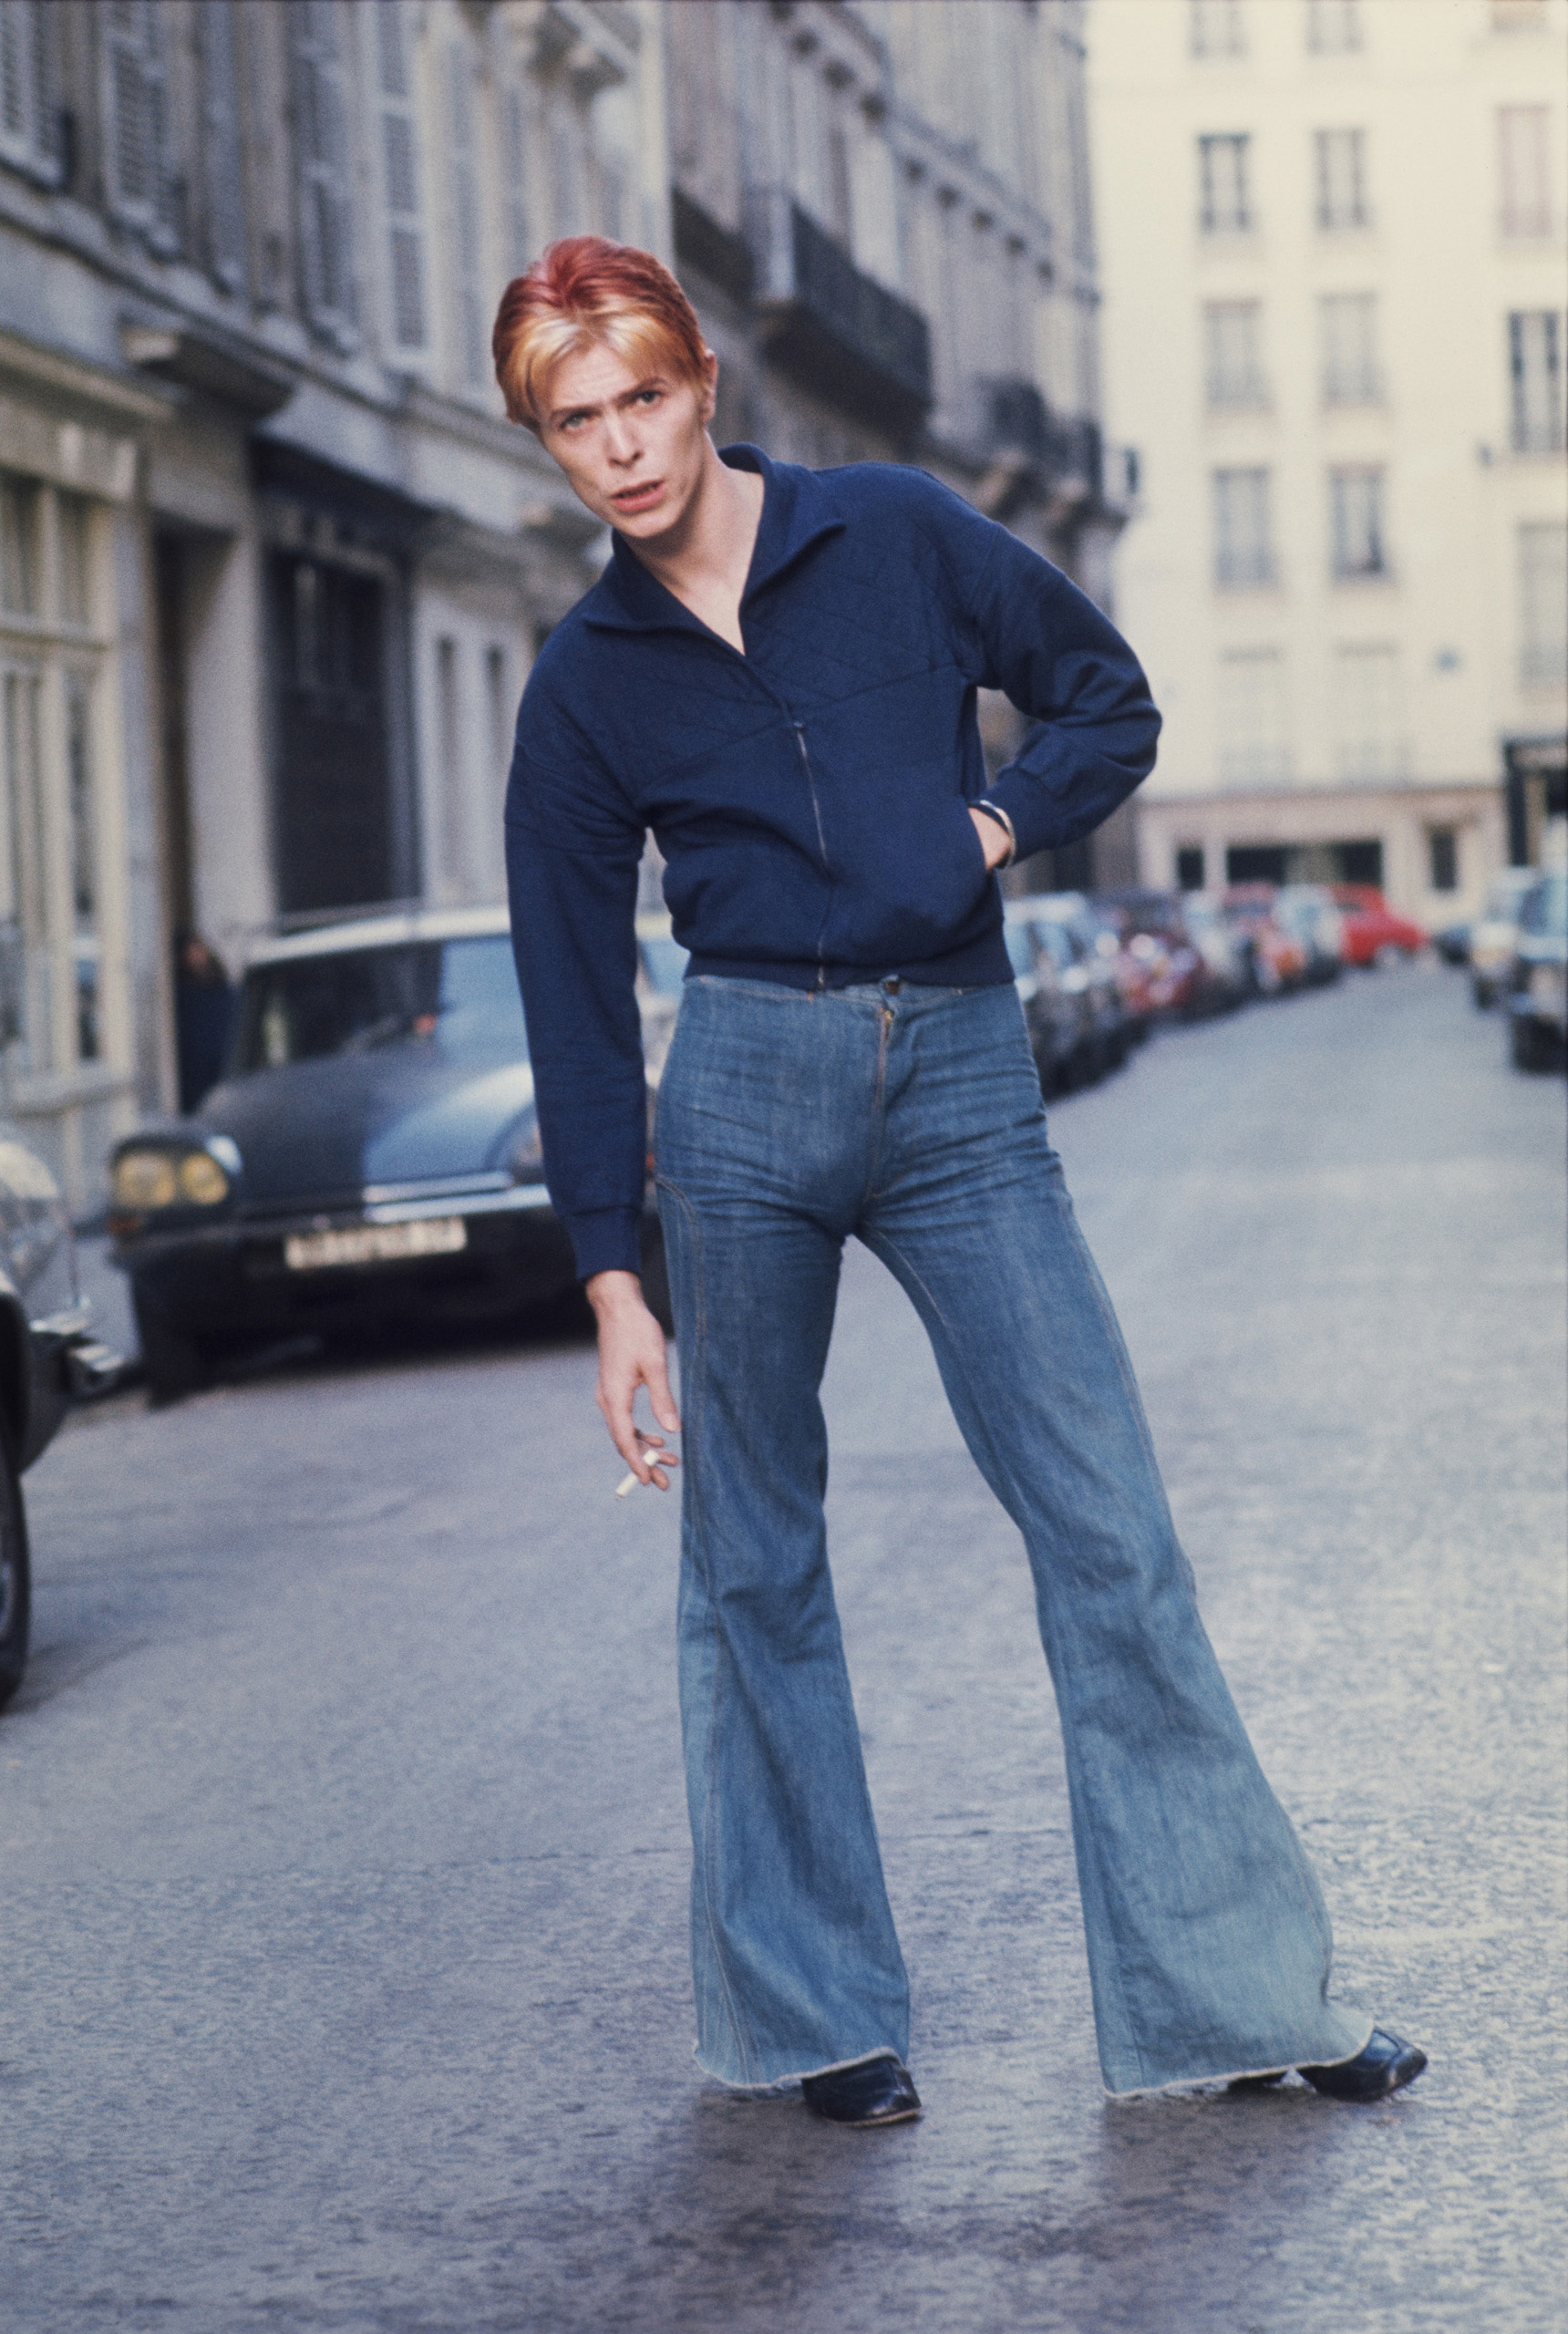 Bowie called Andrew Kent to his hotel suite at L'Hotel in Paris for an impromptu photo shoot in the street outside.